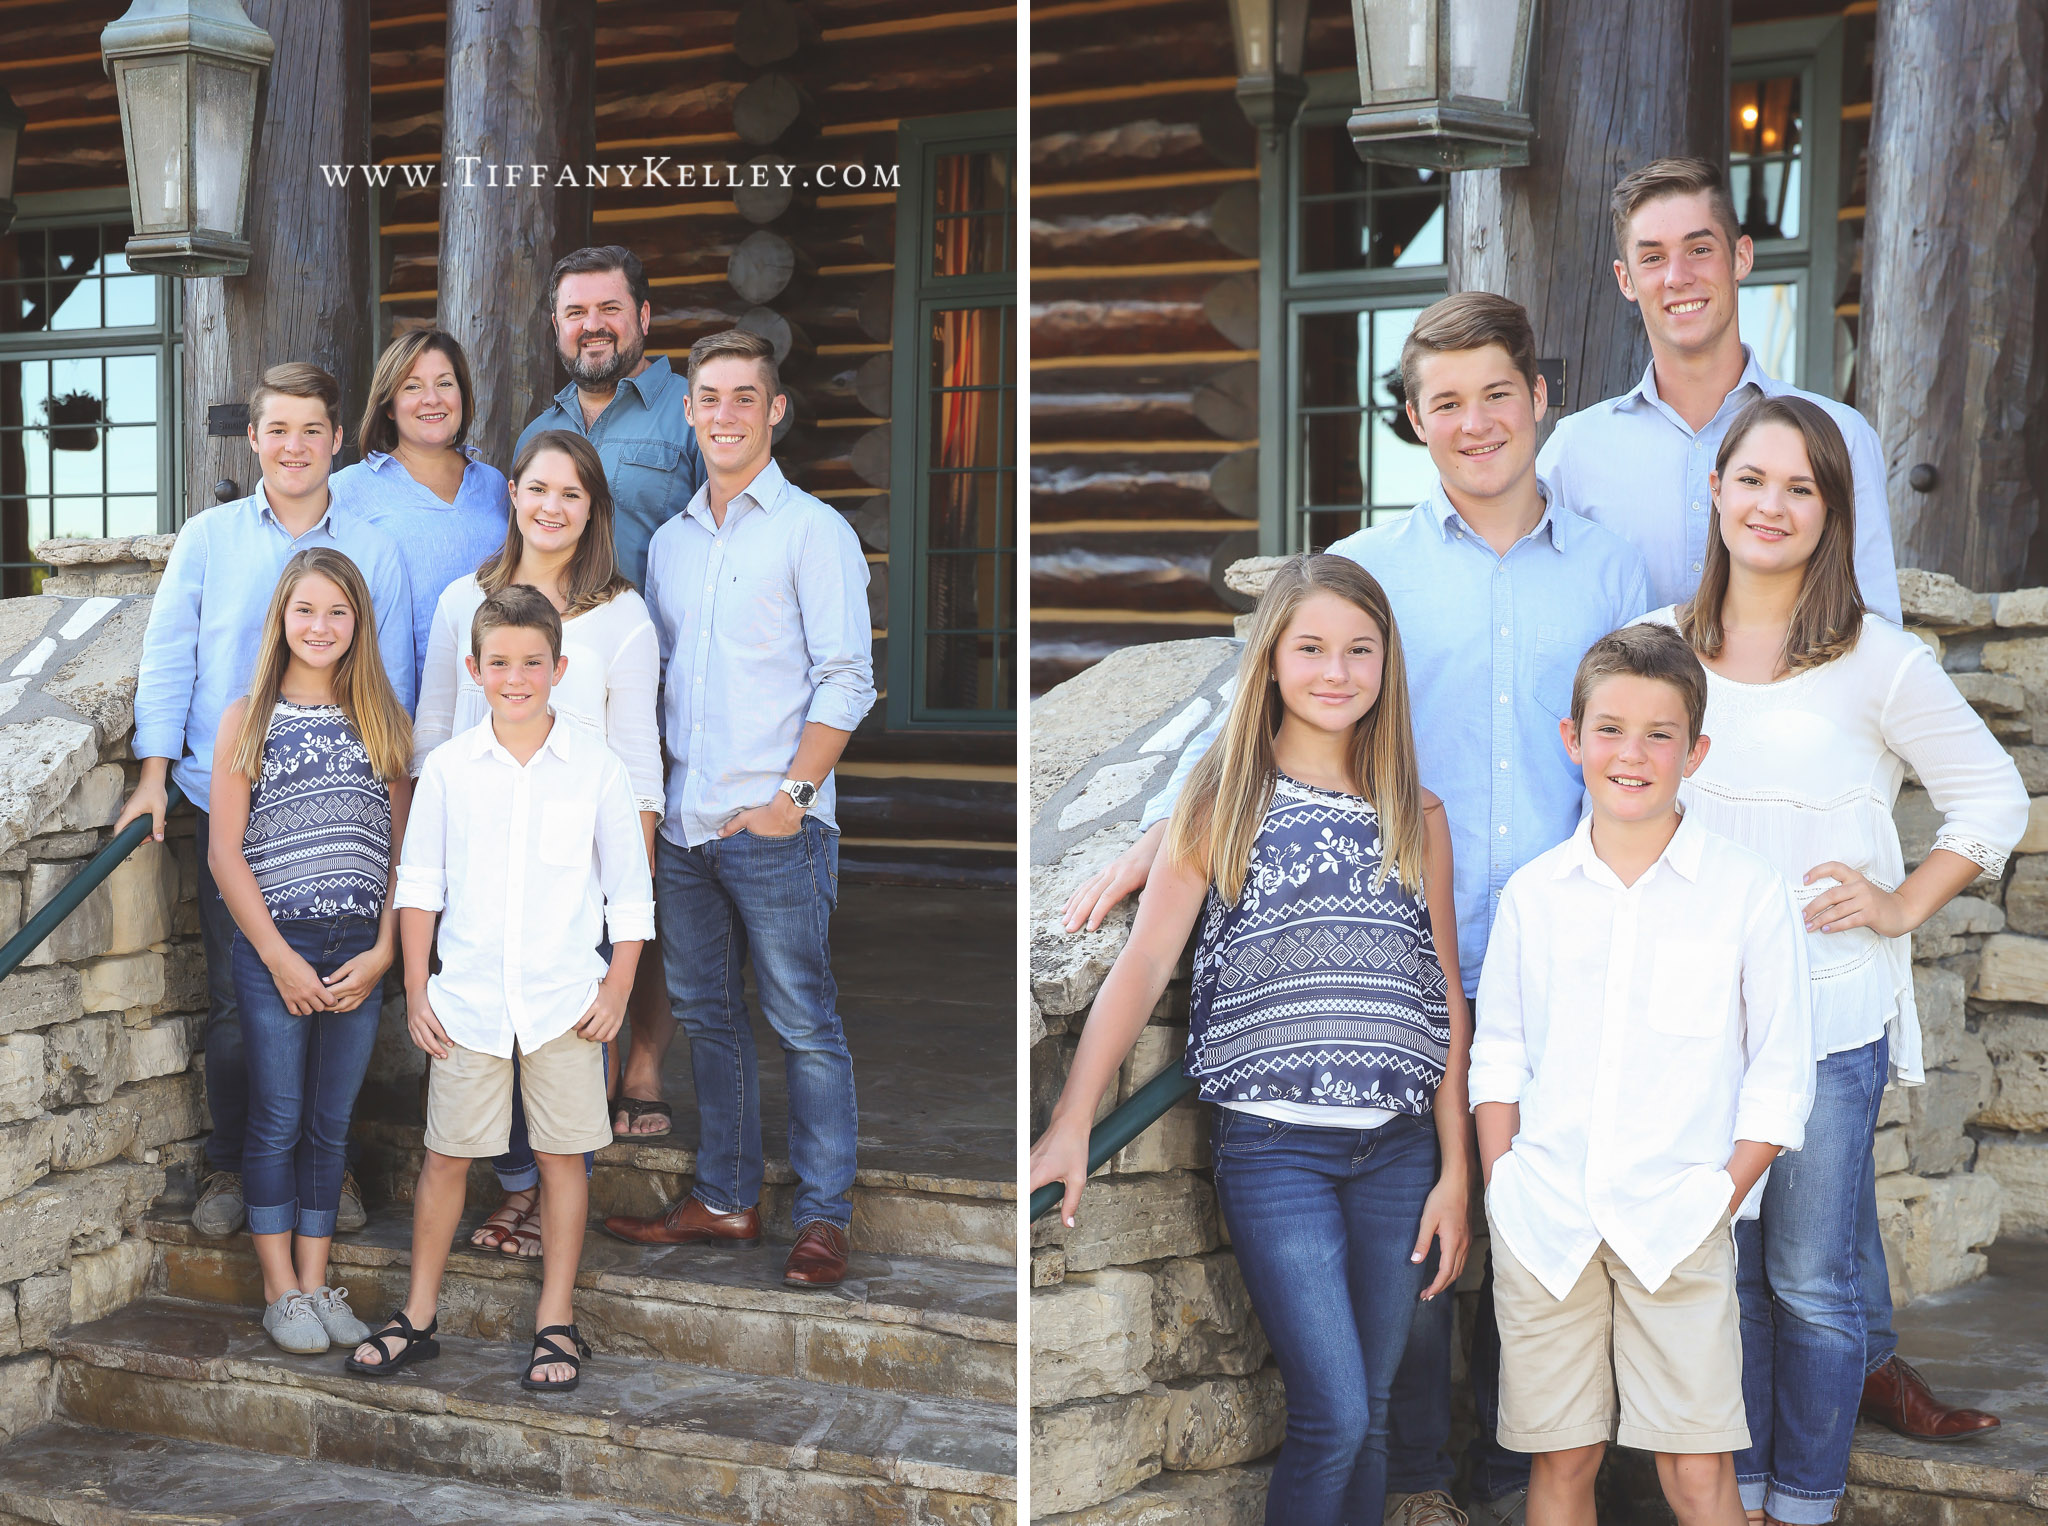 branson-missouri-family-portrait-photographer-tiffany-kelley-photography-08